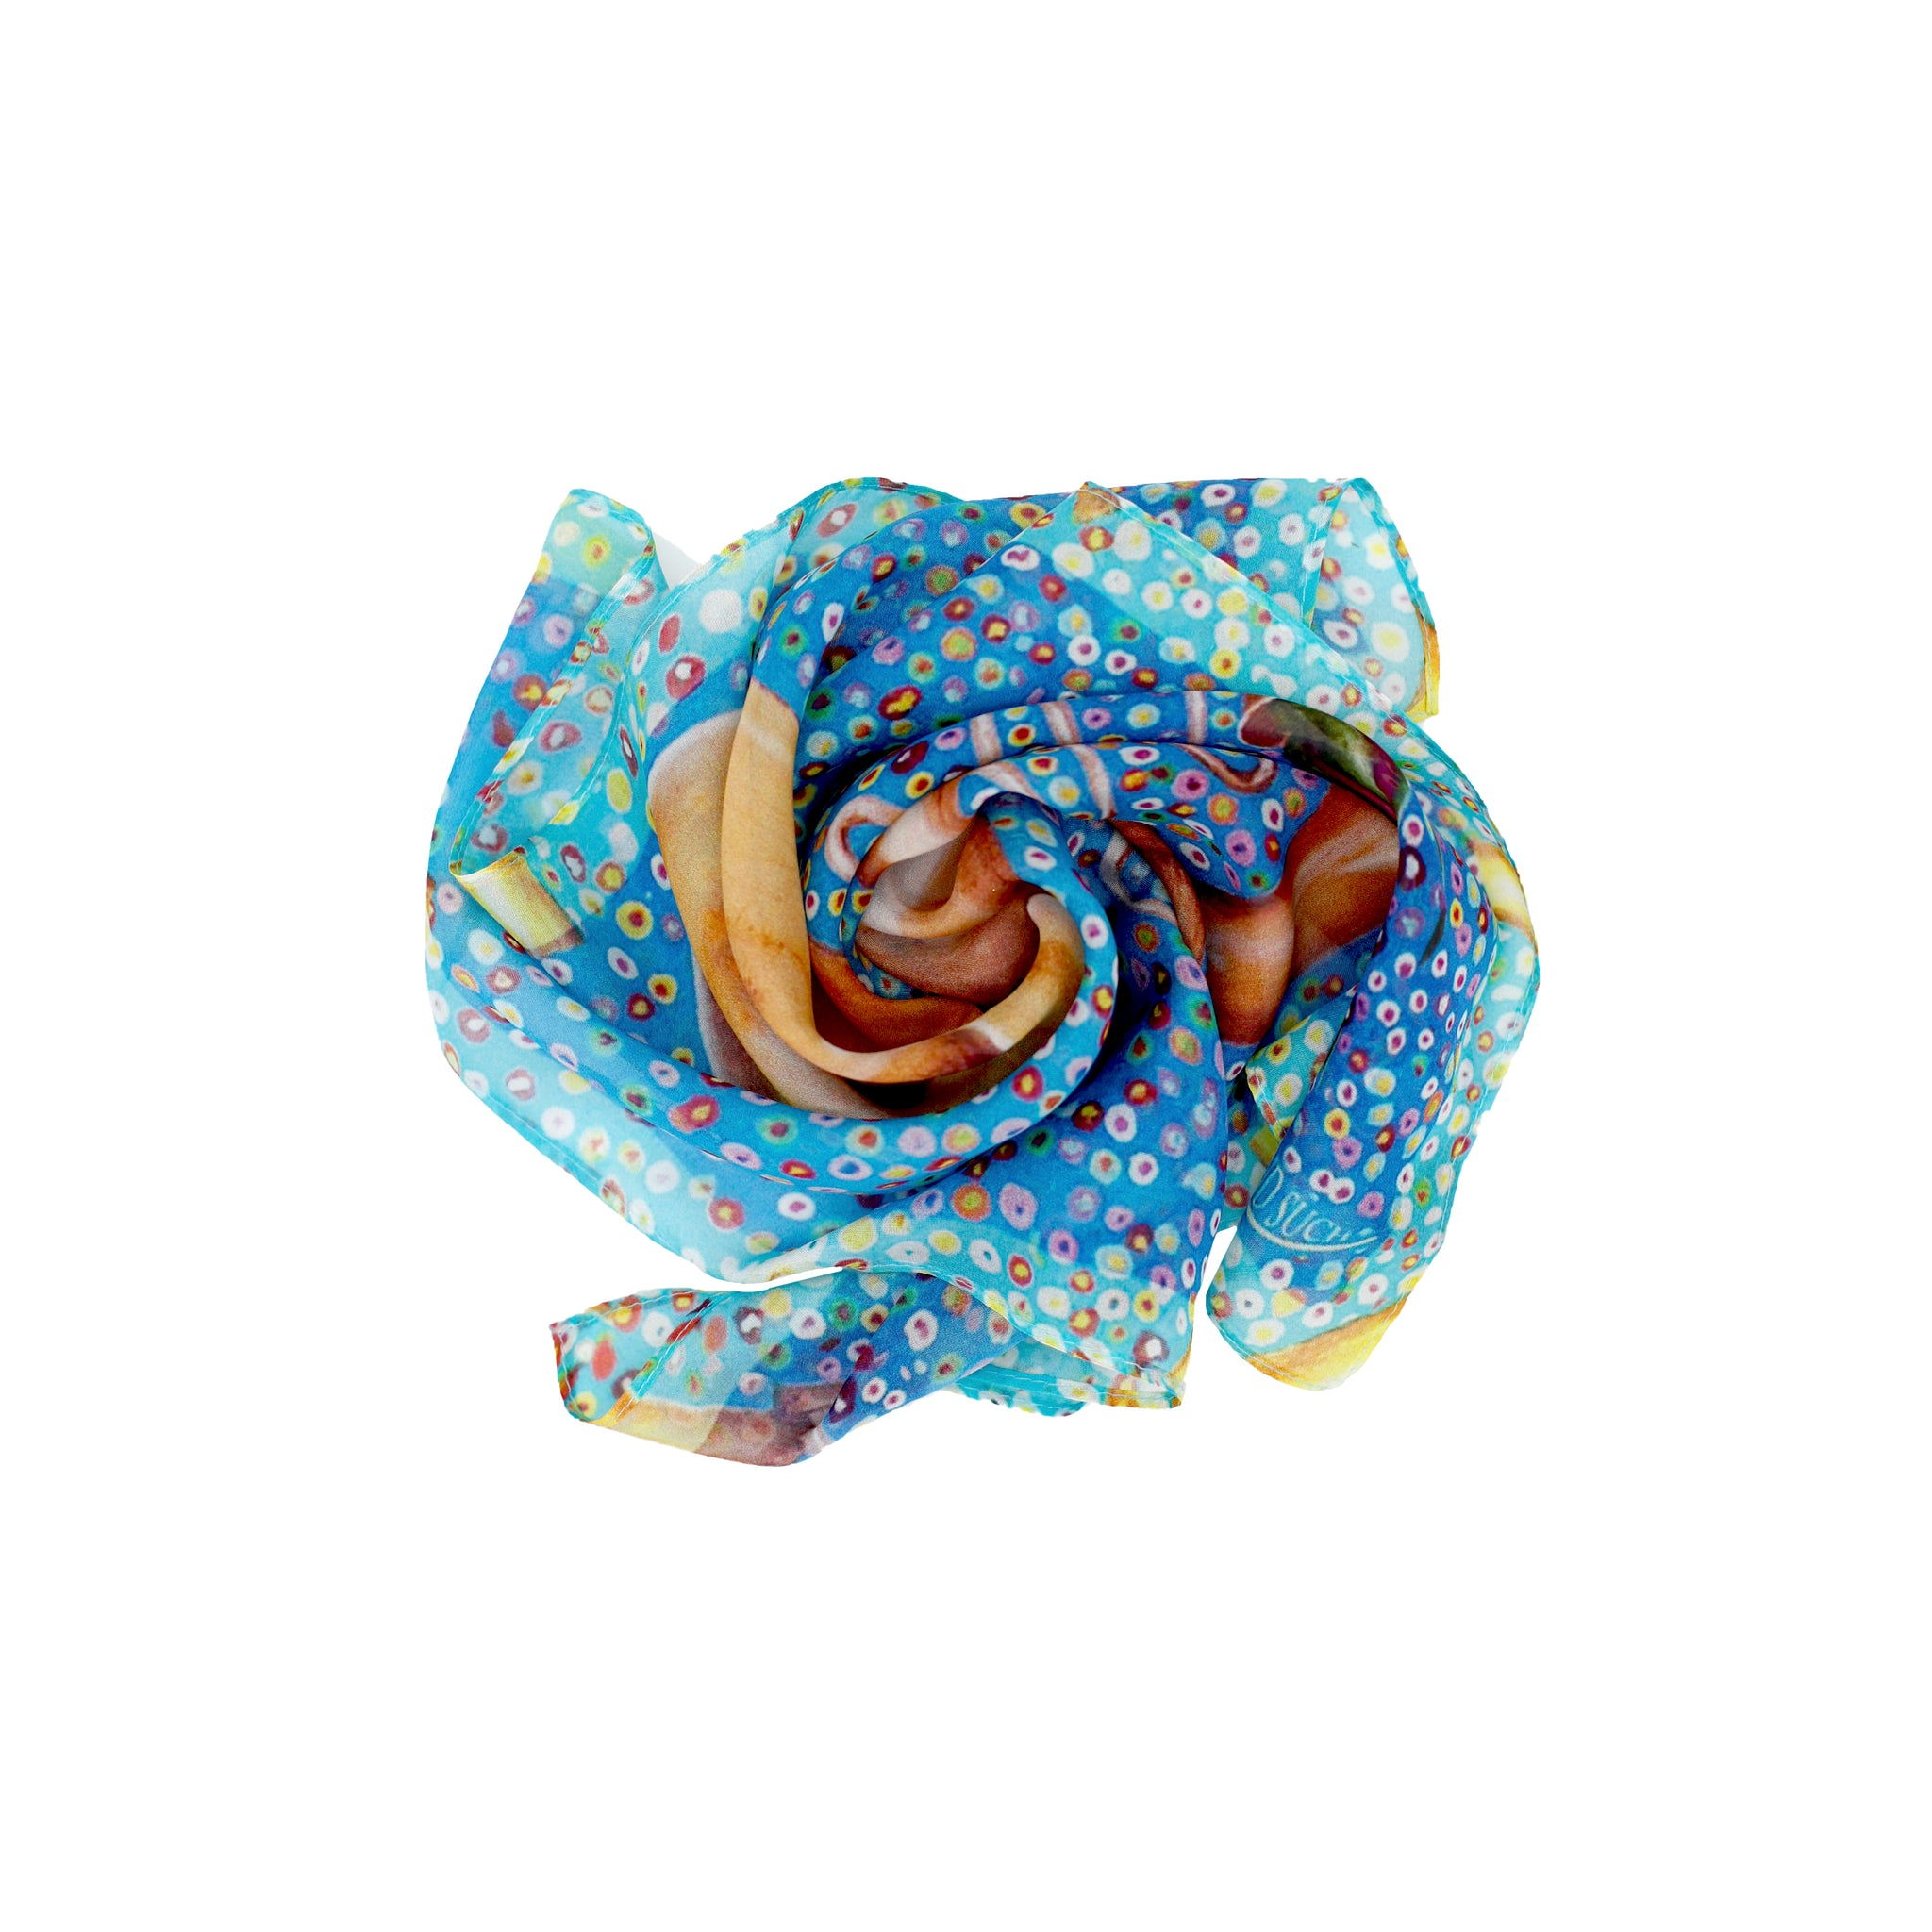 RESONATE Silk Neckerchief Square Scarf Tuba/Rose